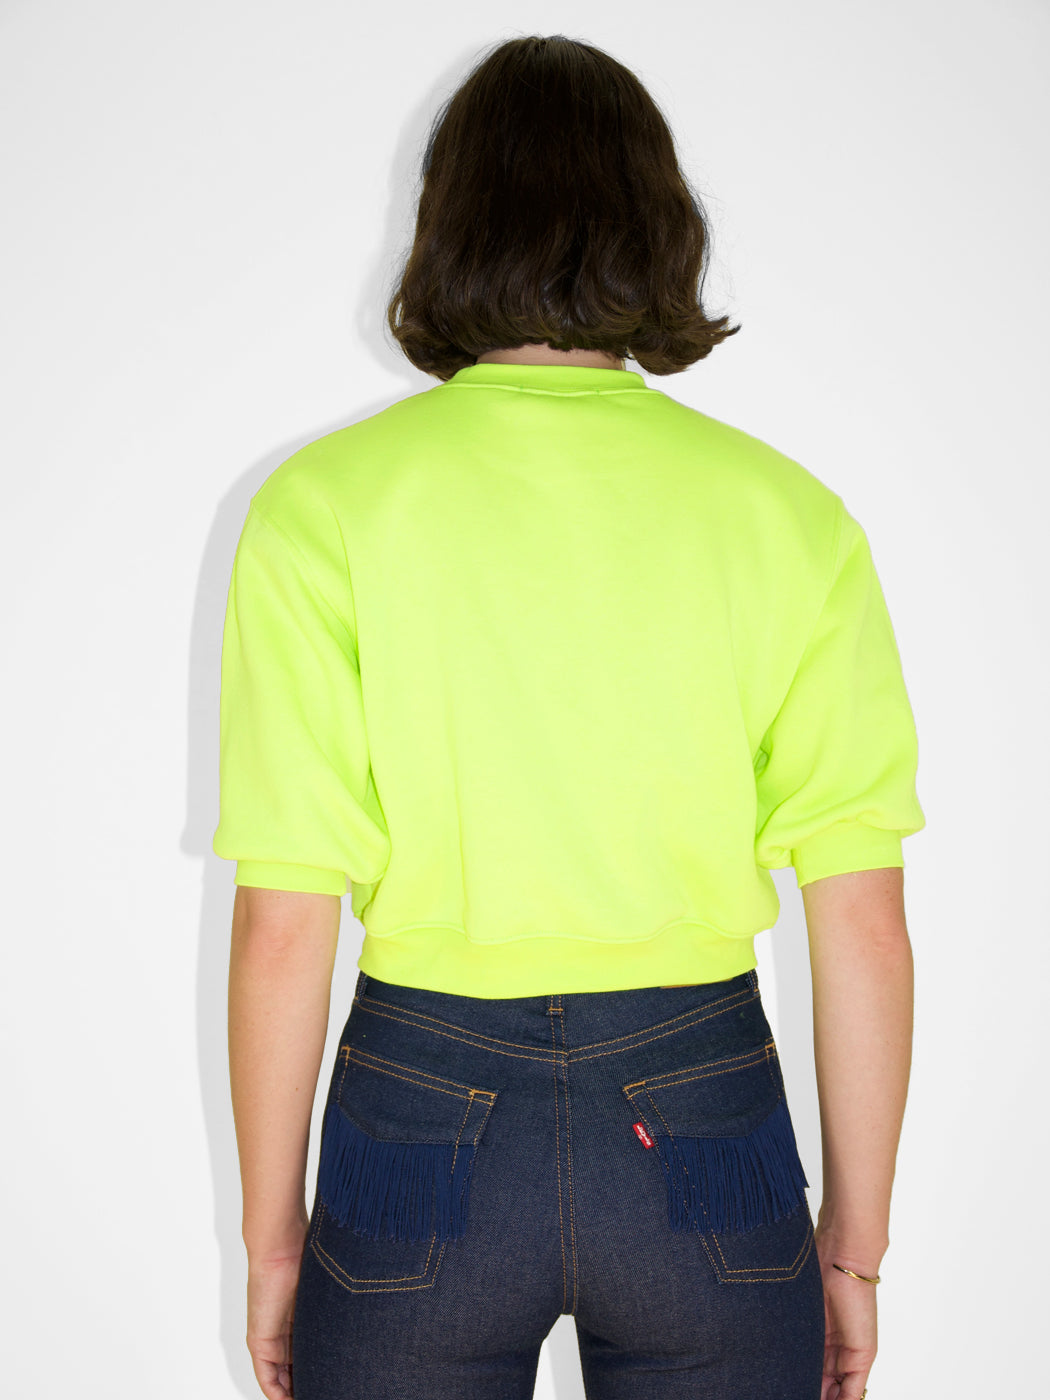 IGWT - Combs Sweatshirt / Day Glo